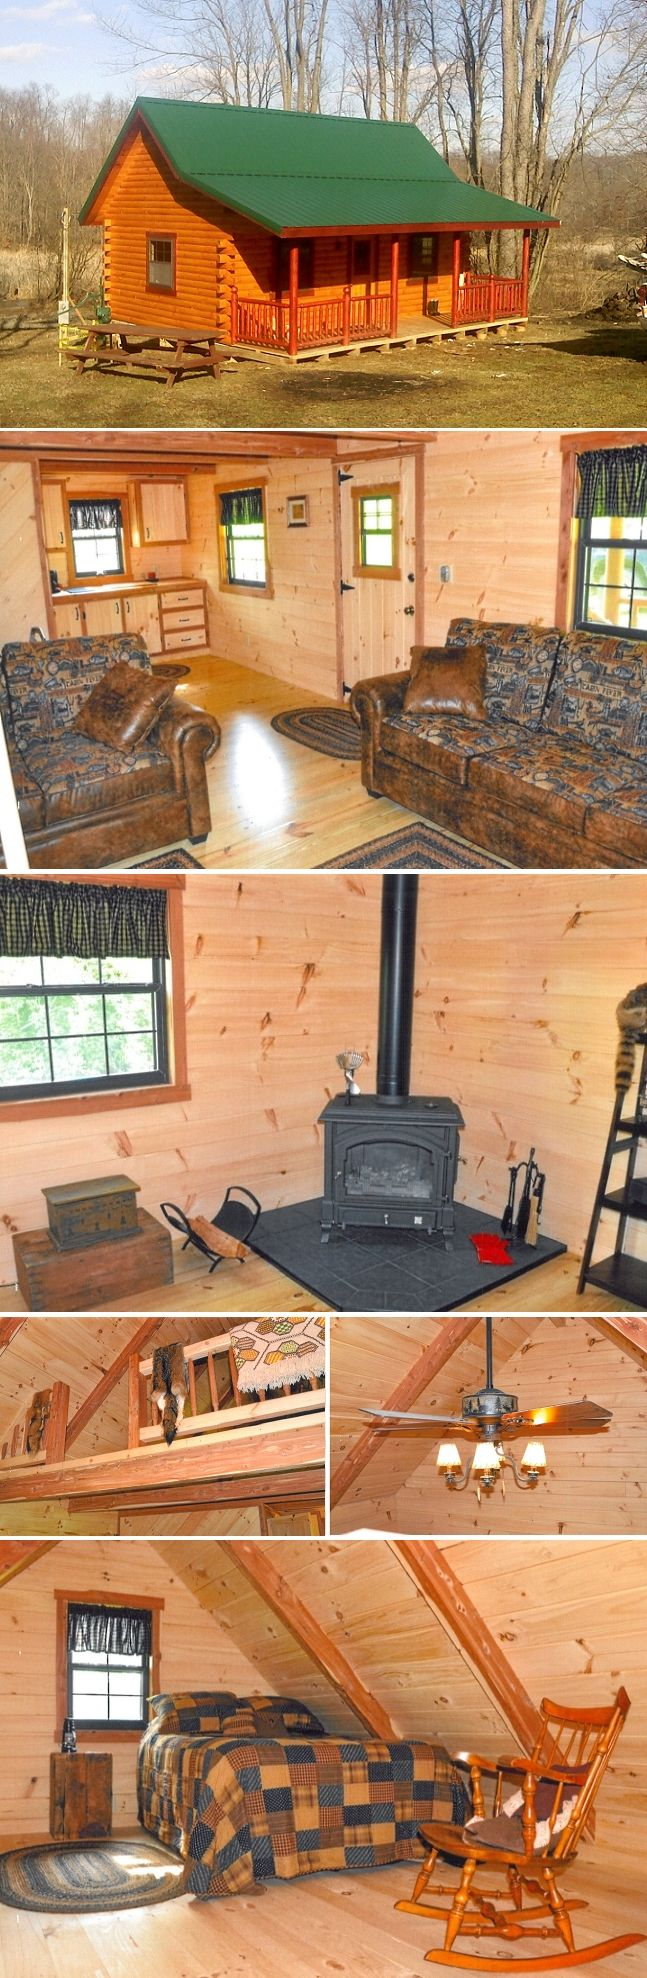 Top 25 ideas about log cabins on pinterest kid playhouse for 14x24 cabin plans